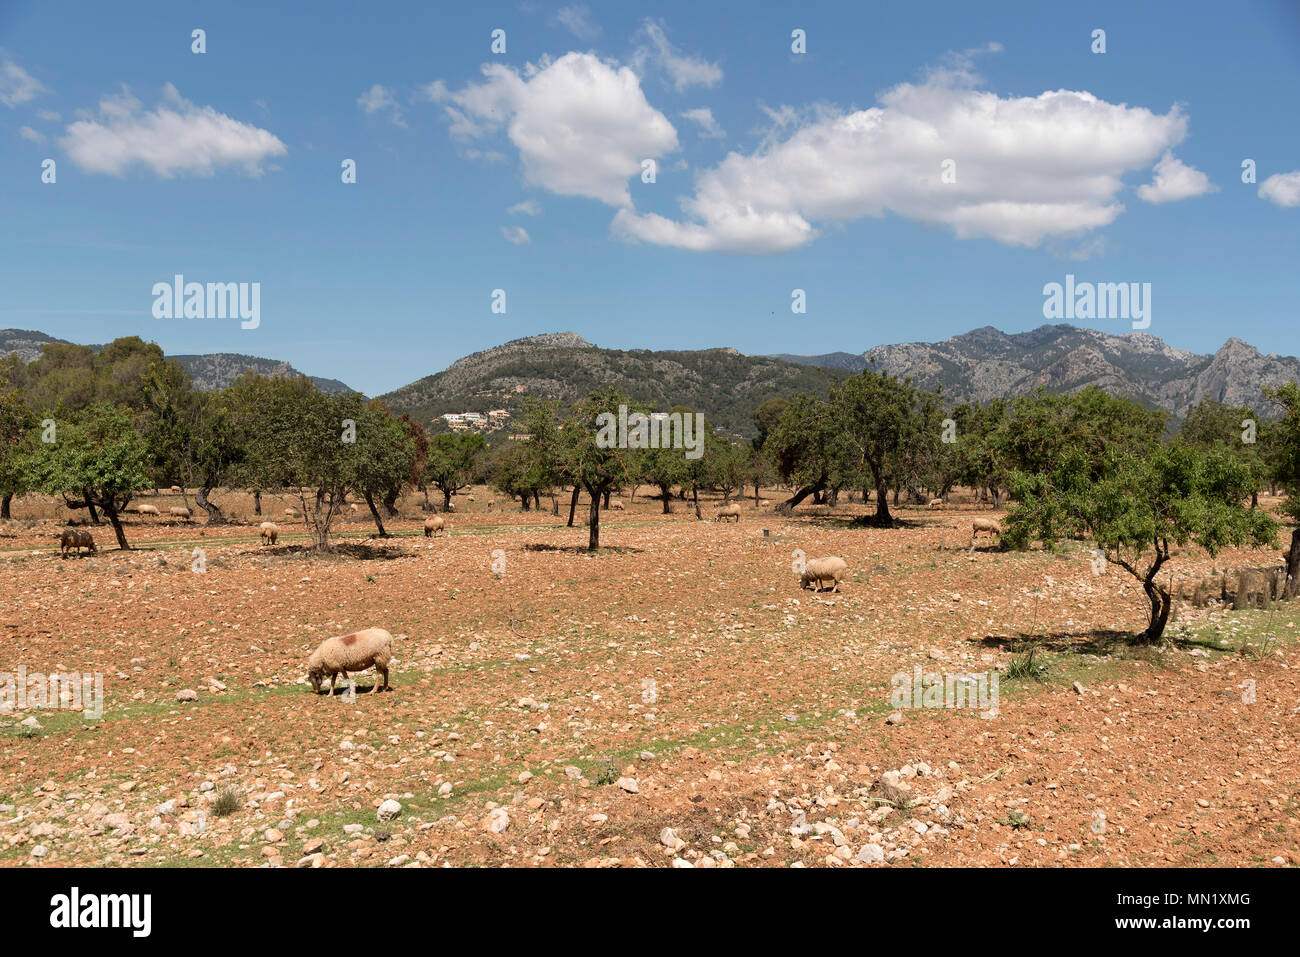 Sheep grazing in the foothills of the Serra de Tramuntana mountain range north of Palma, Mallorca Spain - Stock Image